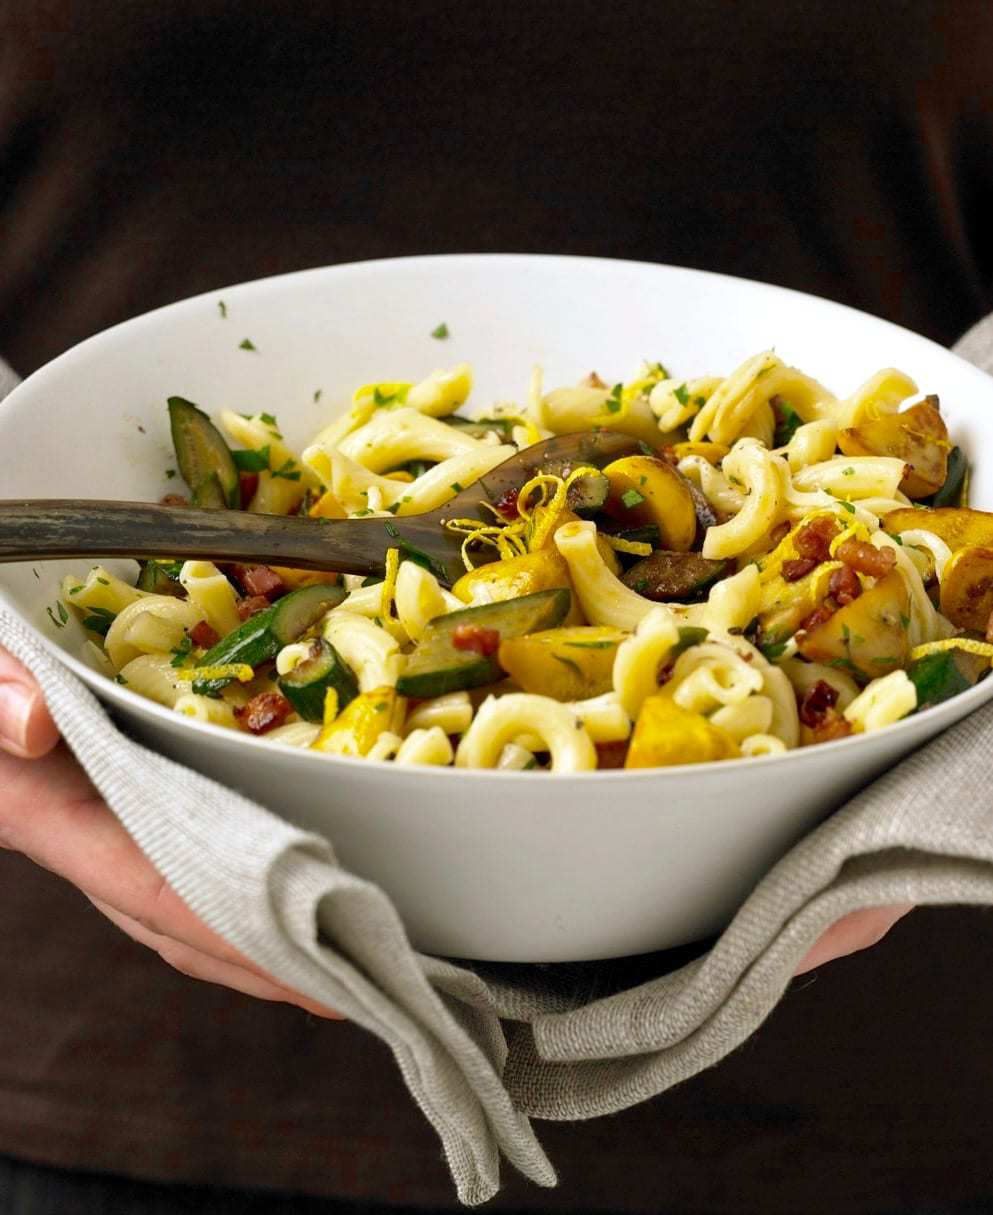 Squash and Pancetta pasta held in white bowl with linen napkin